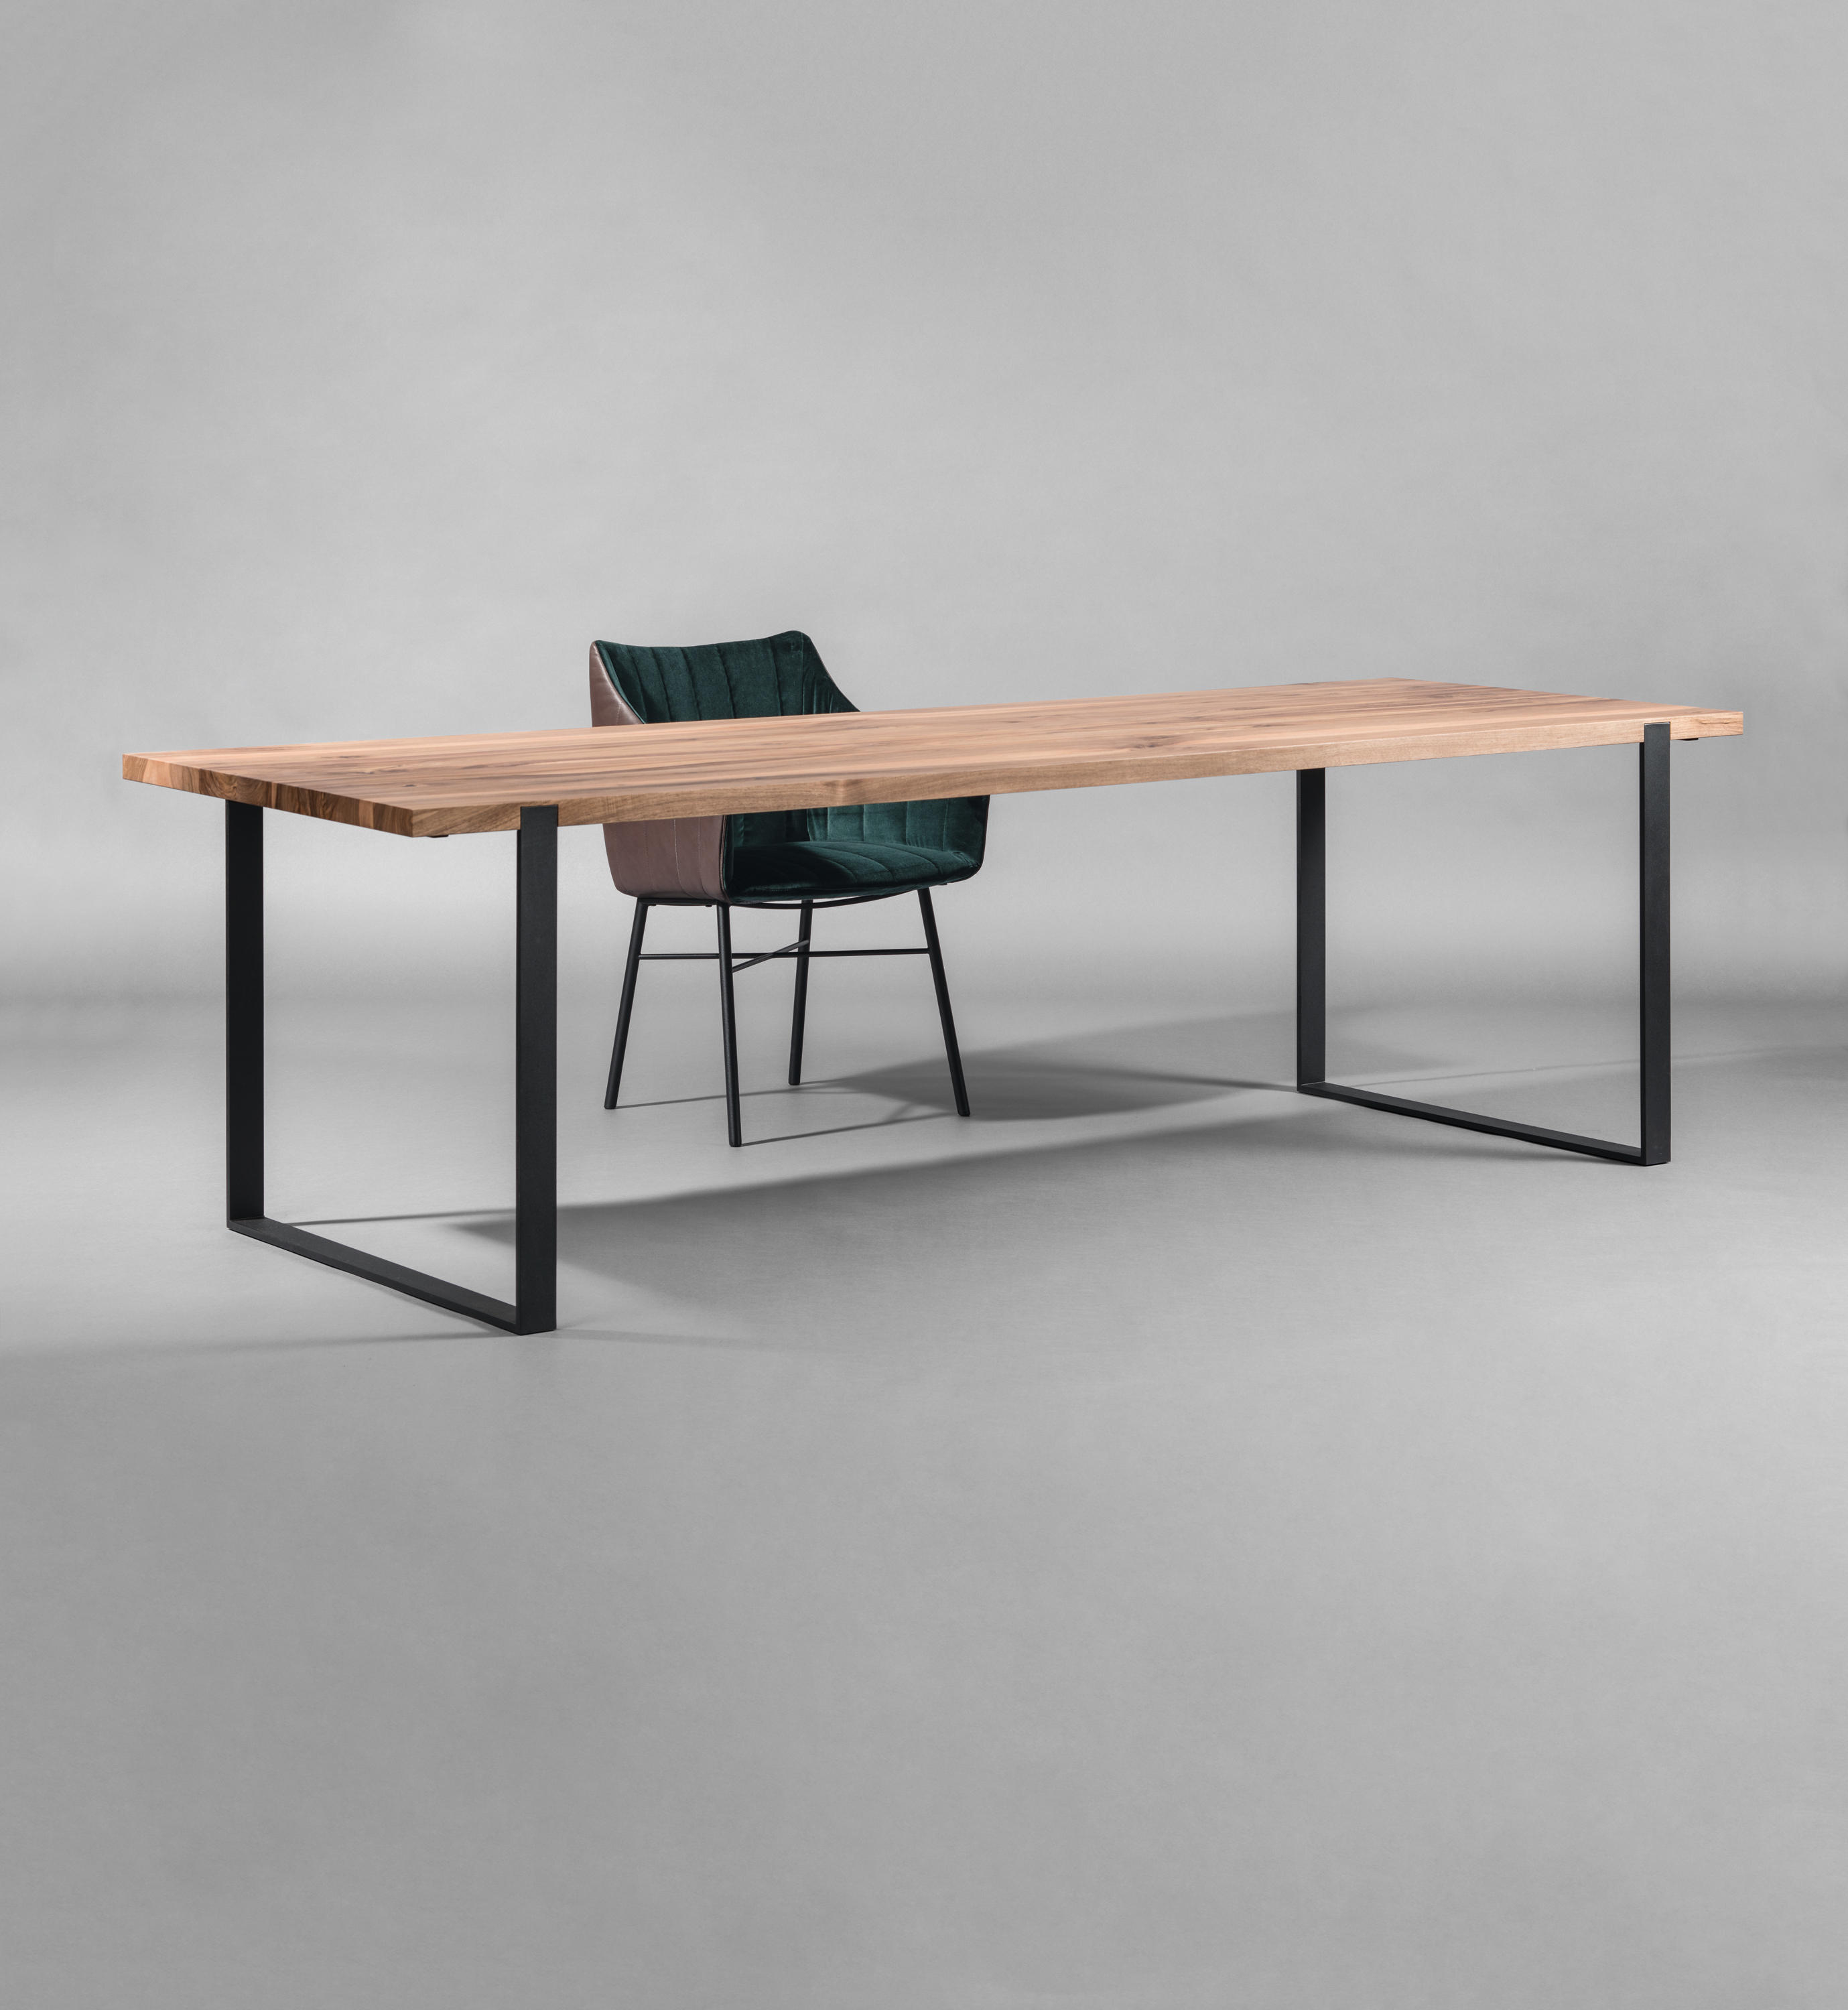 s 700 cpsdesign table dining tables from janua christian seisenberger architonic. Black Bedroom Furniture Sets. Home Design Ideas